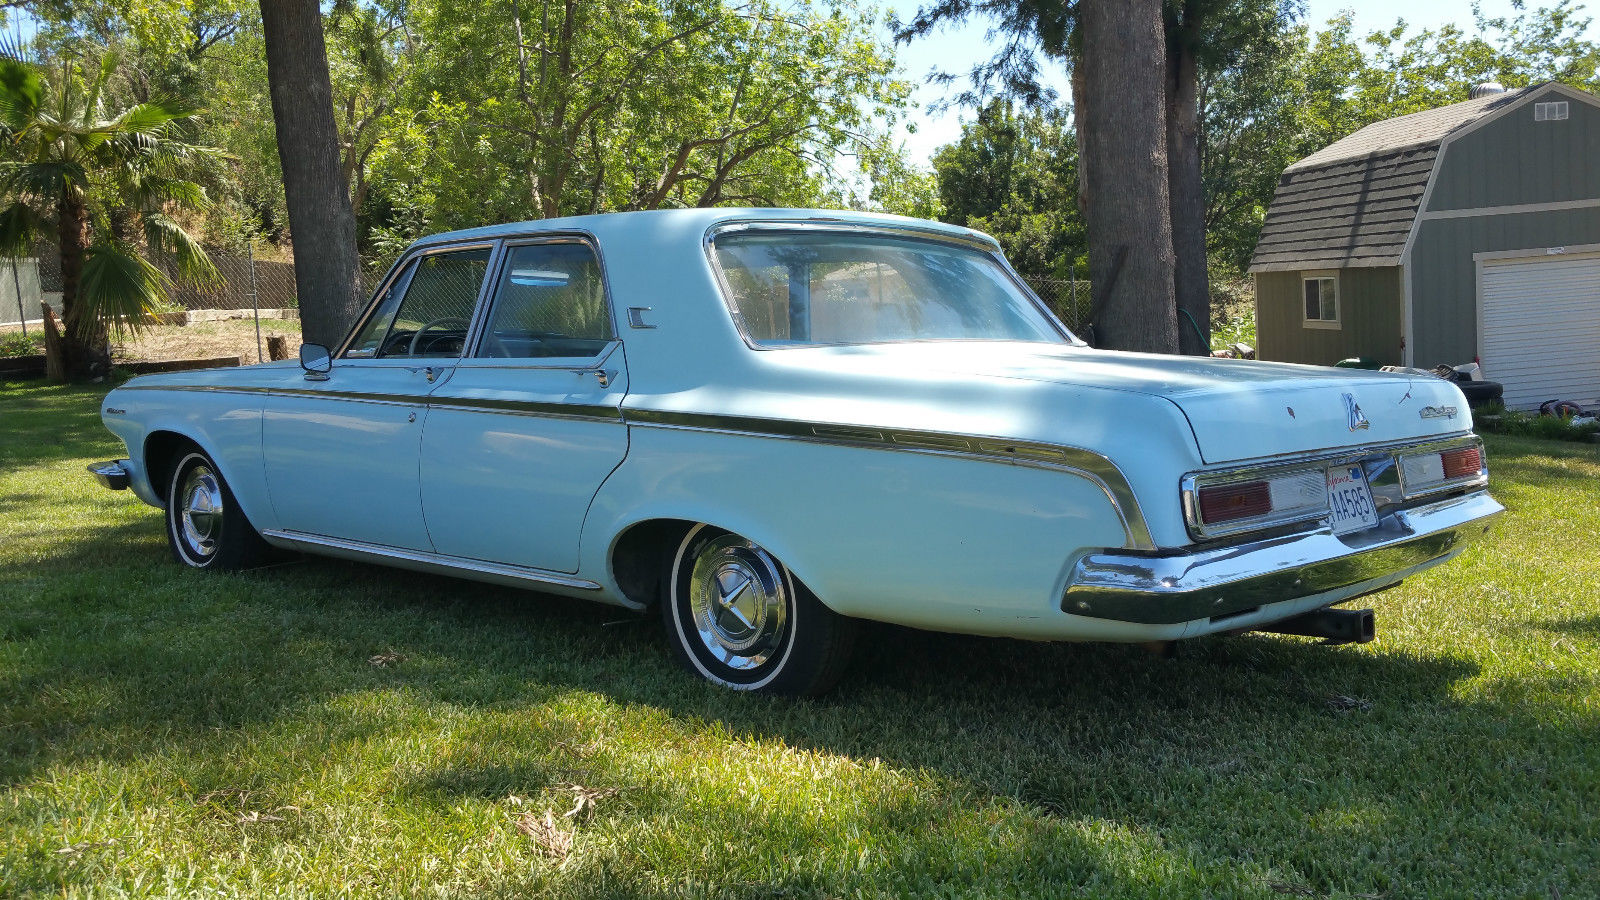 Le Meilleur All American Classic Cars 1963 Dodge Polara 4 Door Sedan Ce Mois Ci